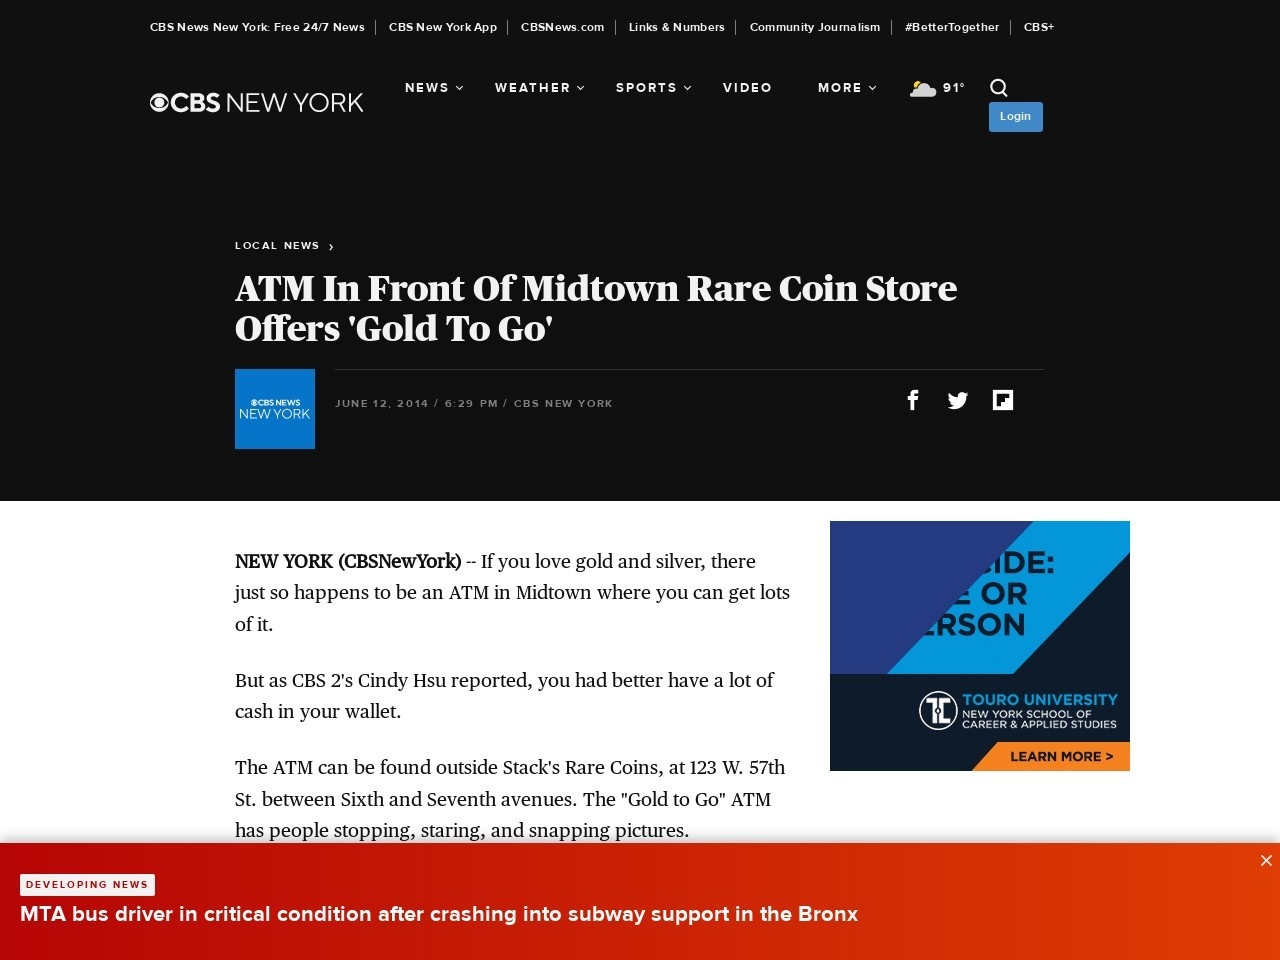 ATM In Front Of Midtown Rare Coin Store Offers 'Gold To Go'